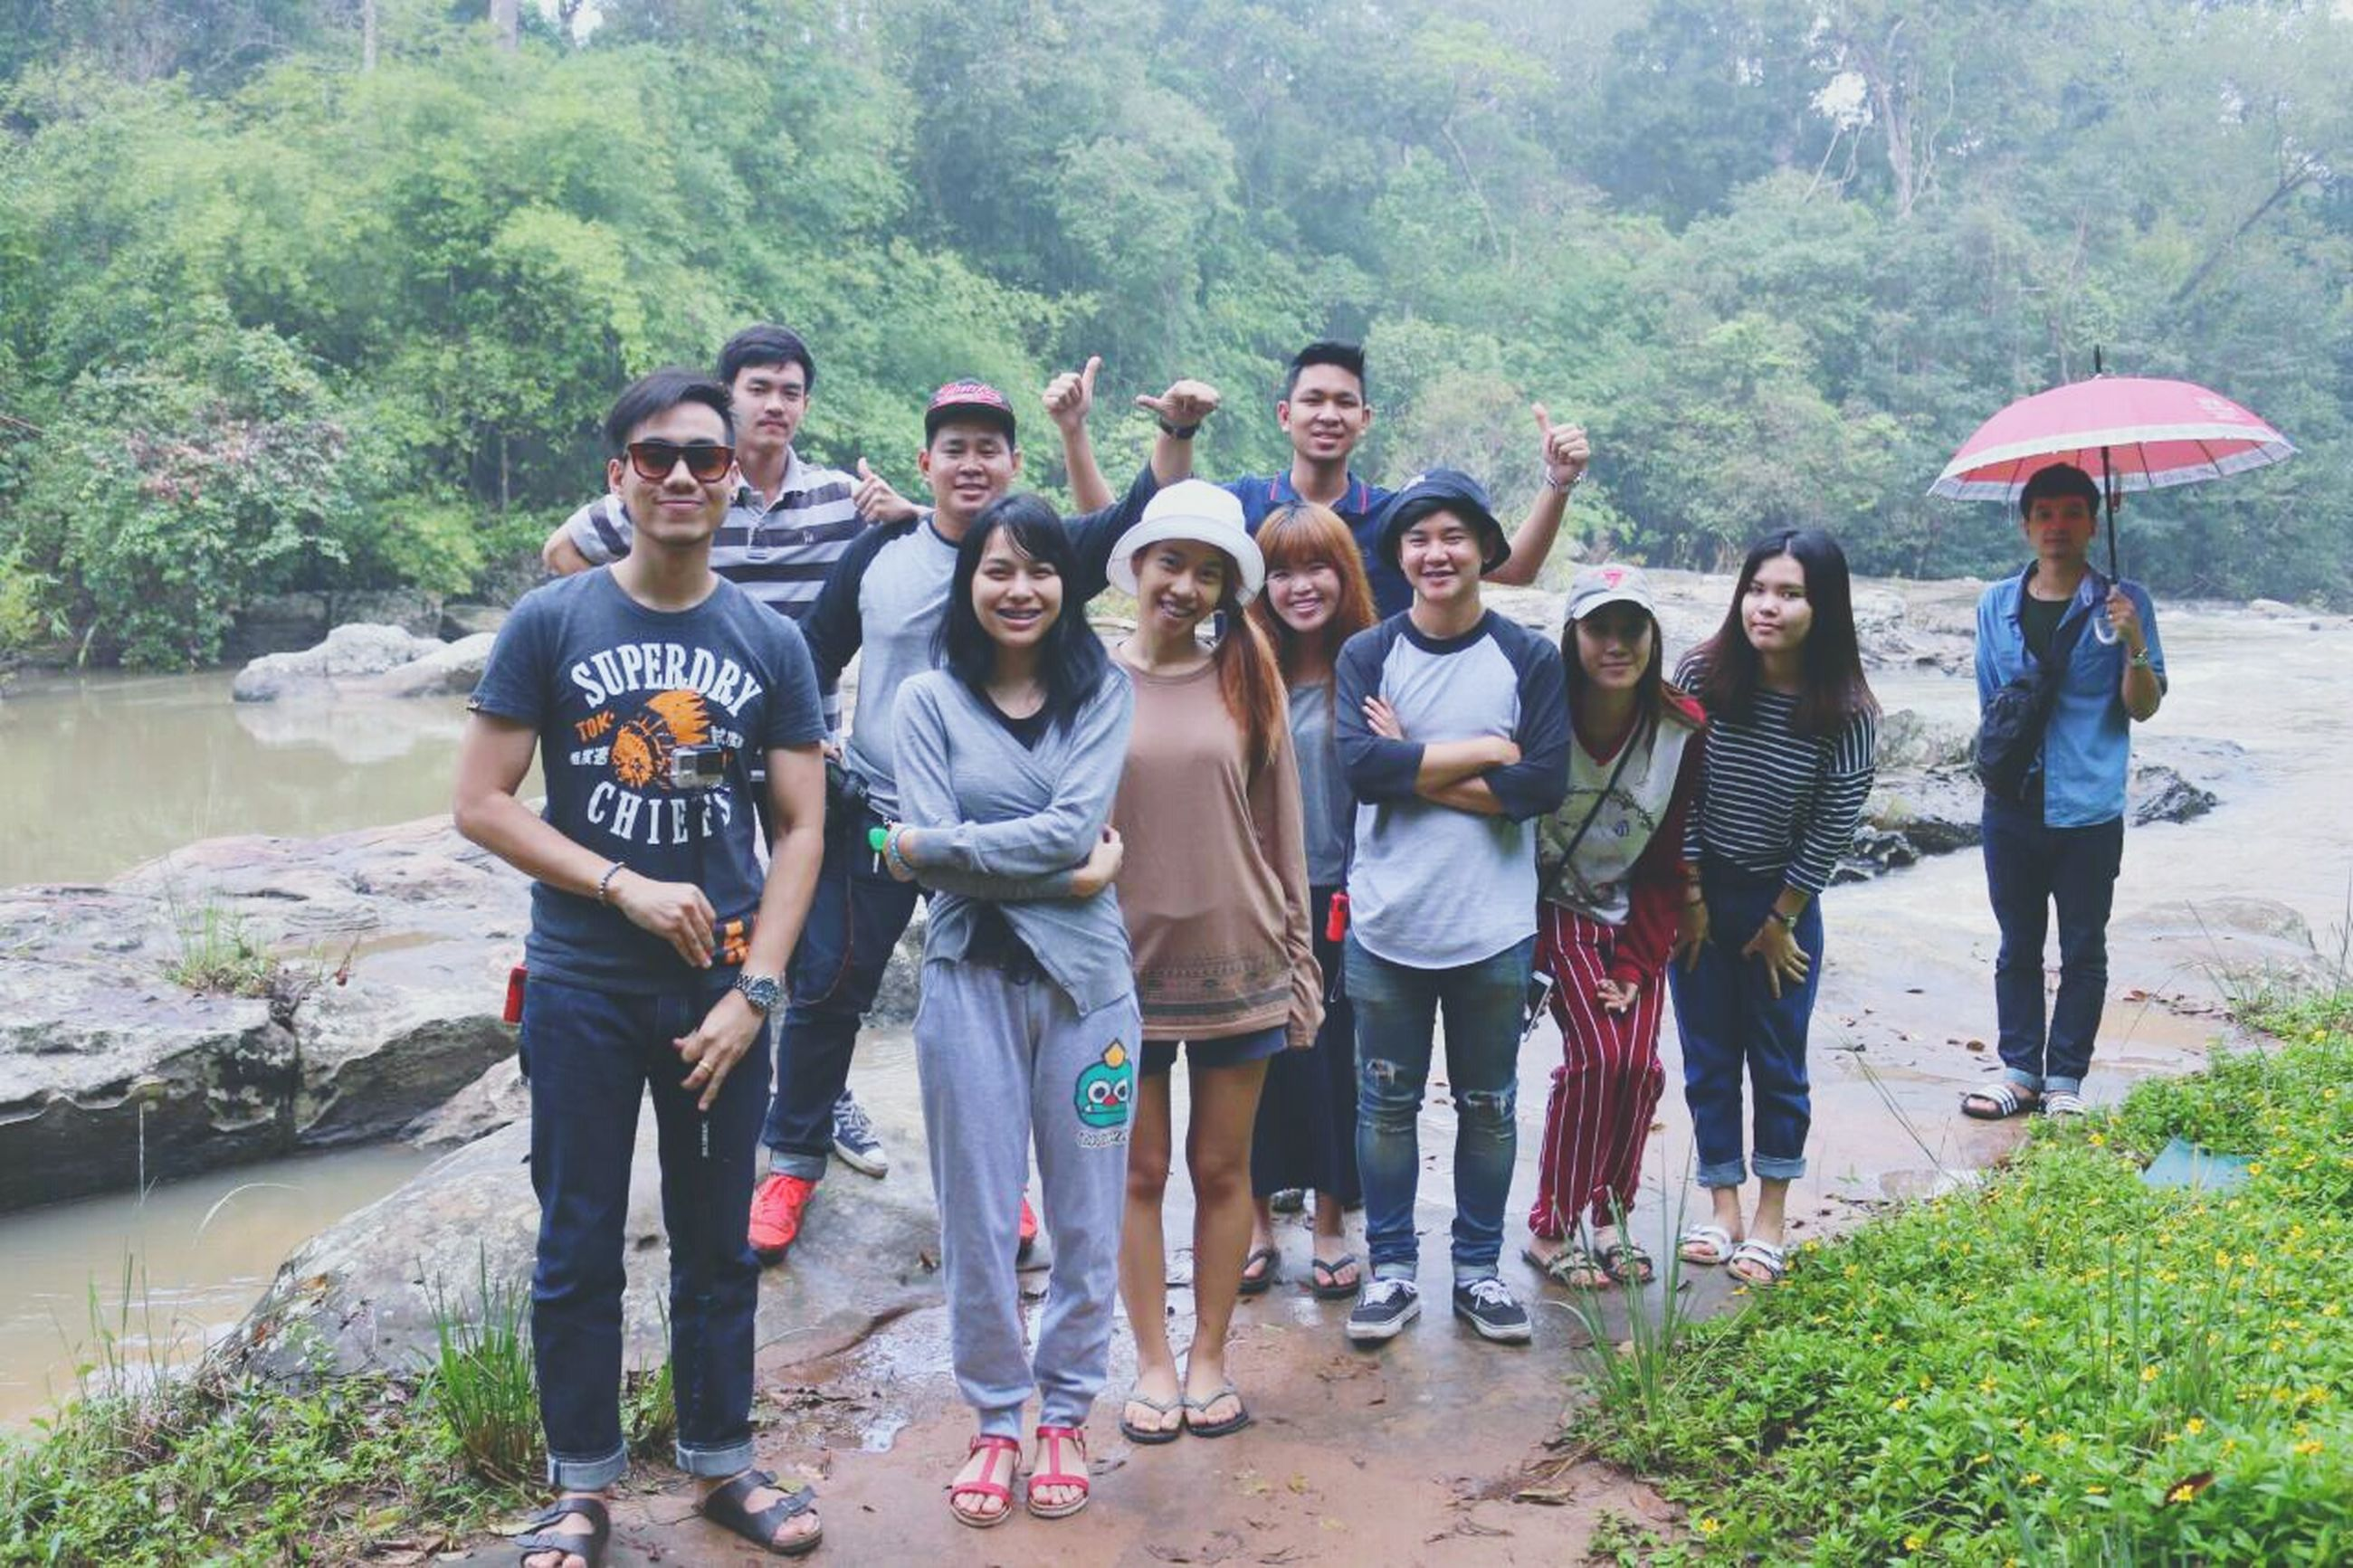 lifestyles, leisure activity, togetherness, casual clothing, full length, person, men, friendship, bonding, love, vacations, large group of people, standing, tree, walking, rear view, tourist, girls